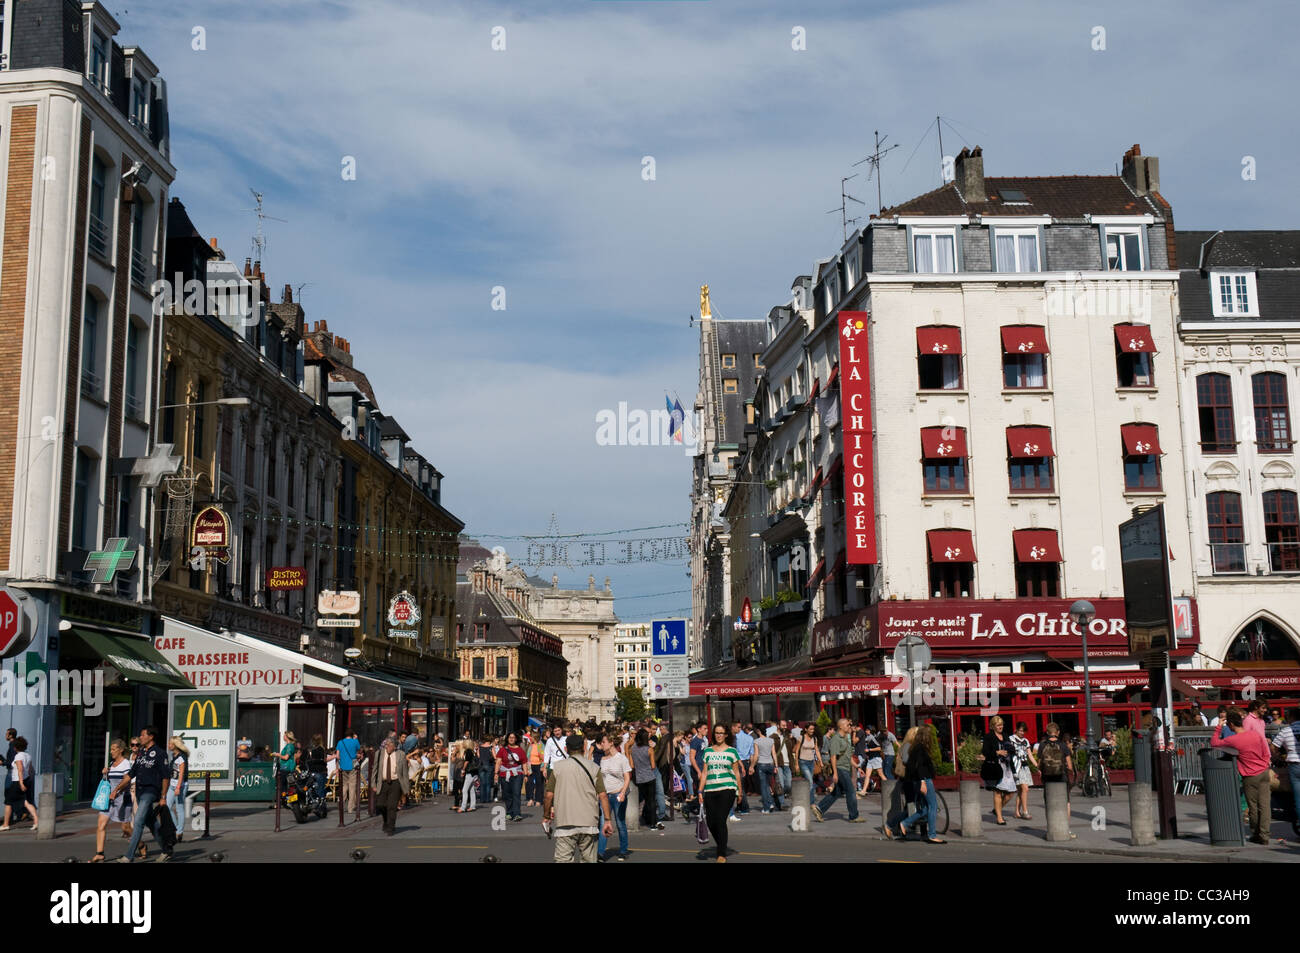 Tourists and locals enjoy a sunny day in Lille, France. The cafes and resturants in Pl. Rihour are doing a good - Stock Image